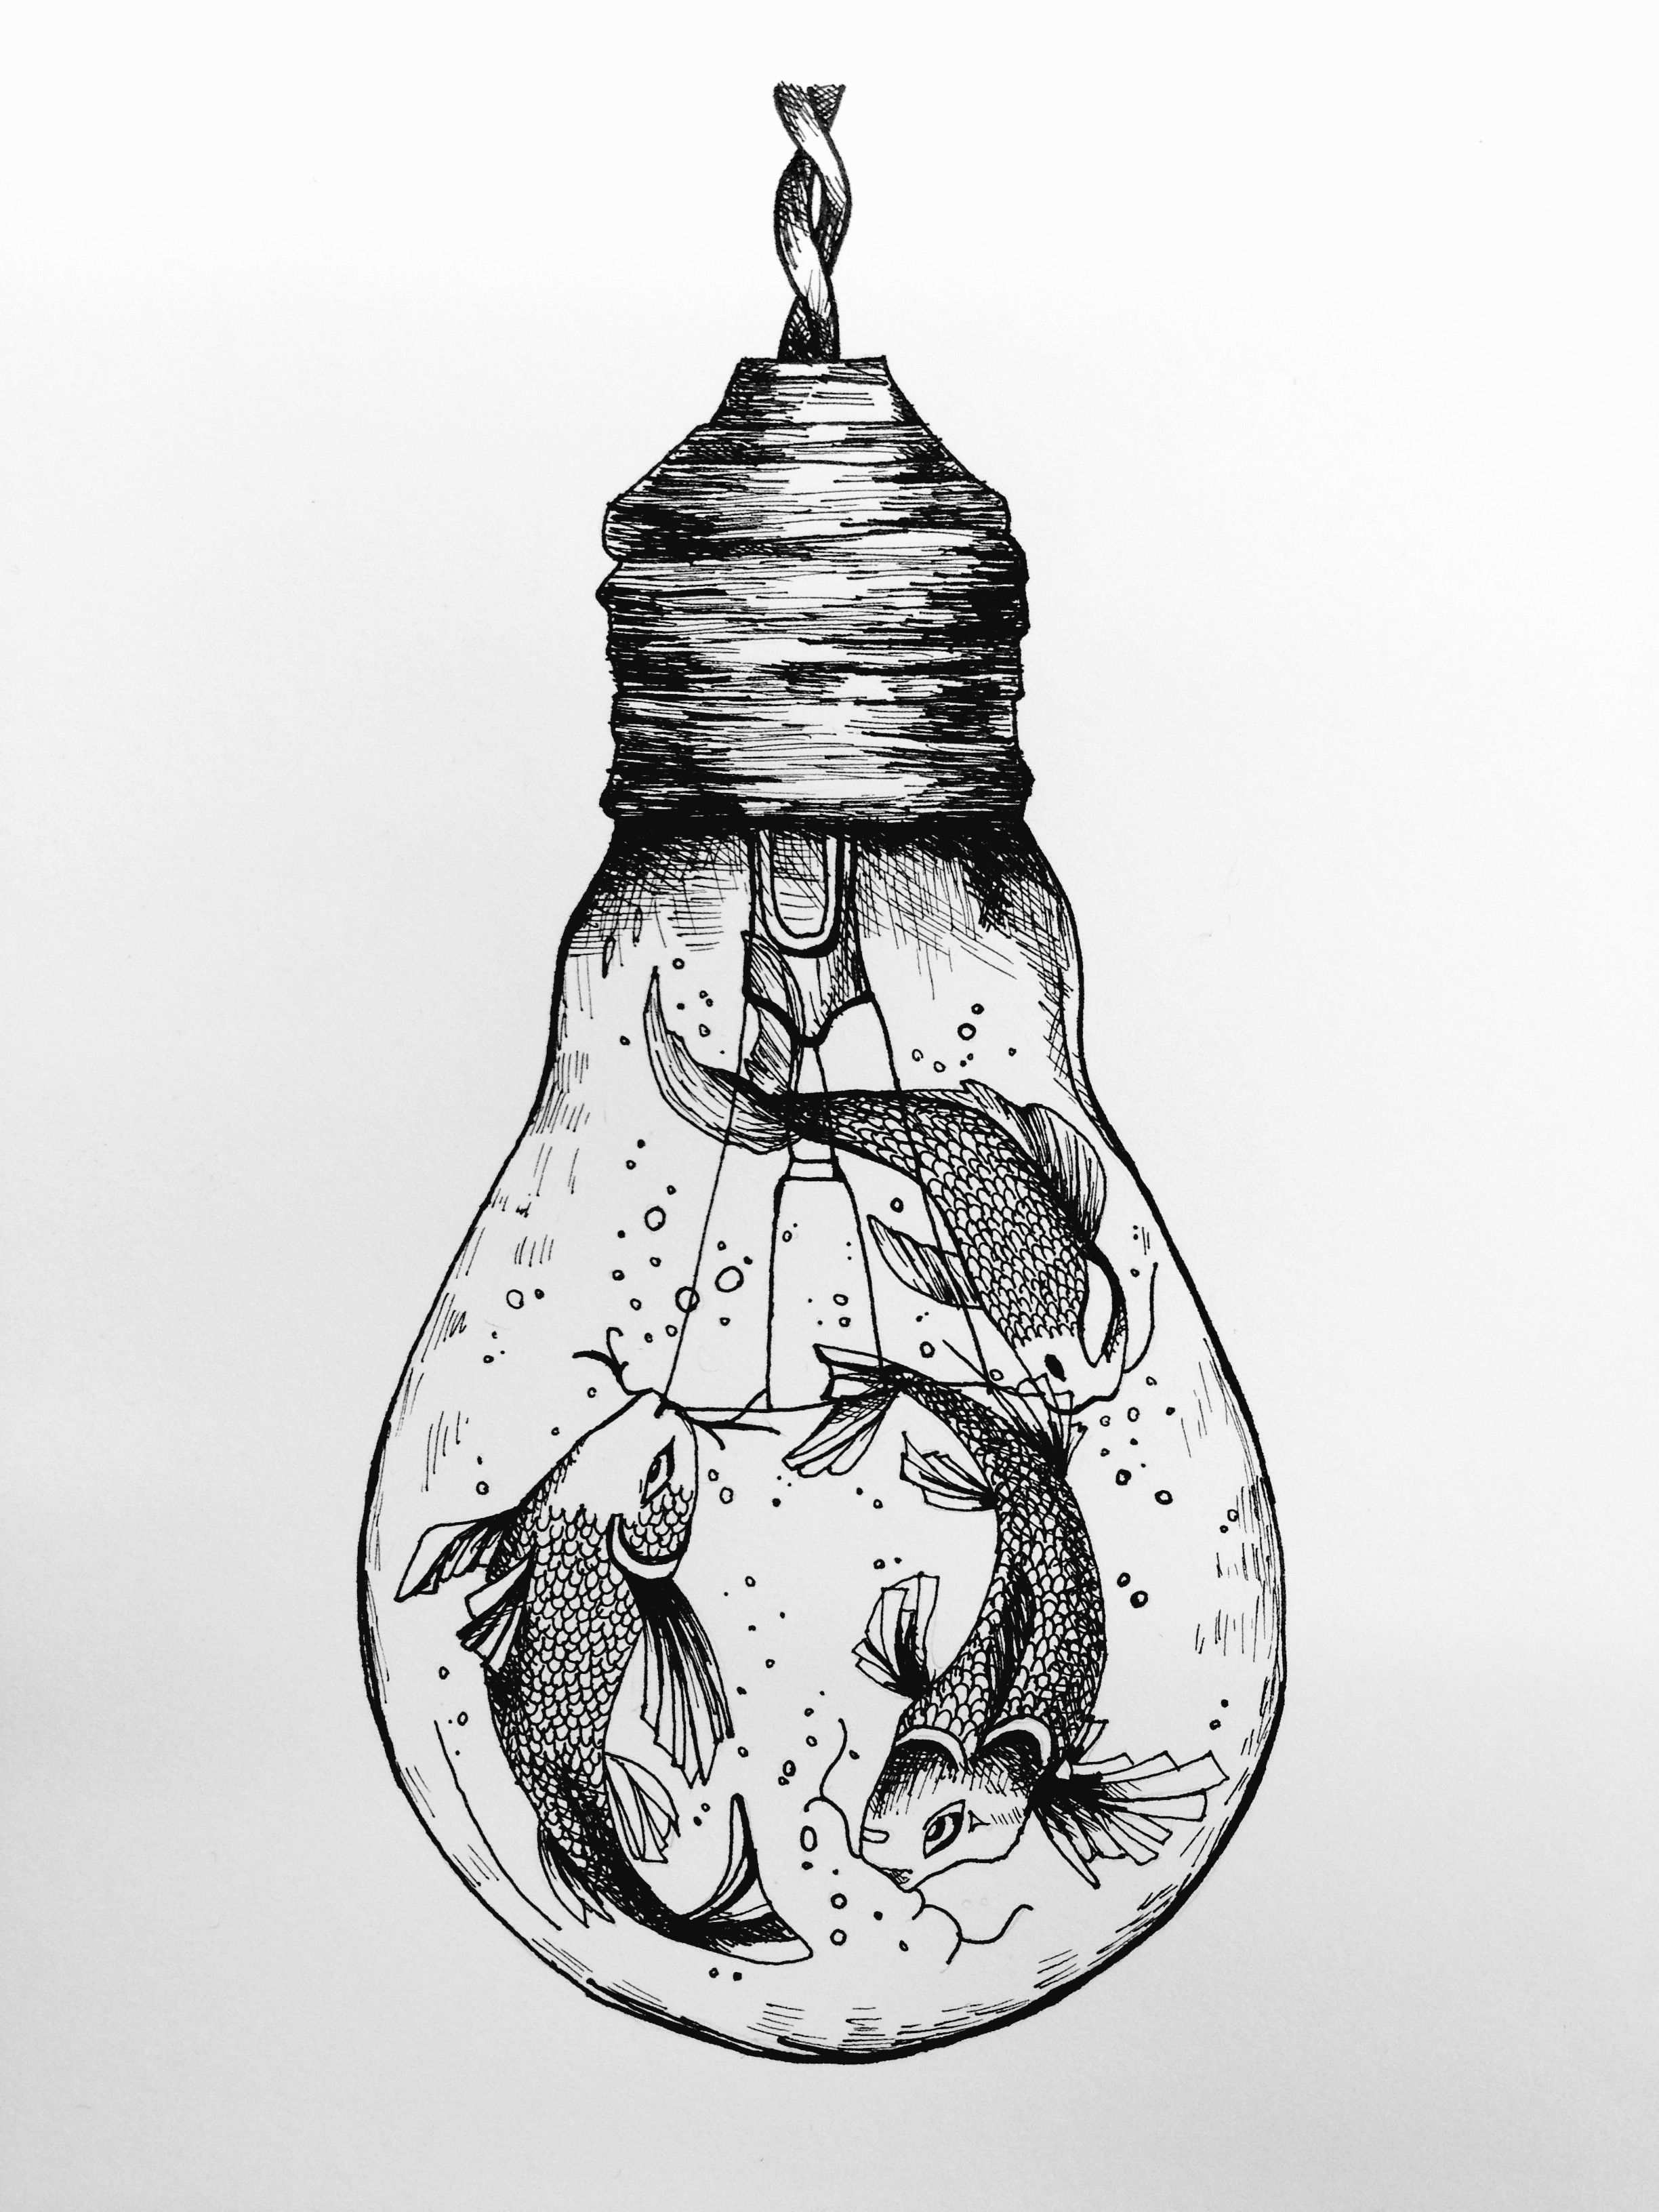 drawing ideas images - HD2448×3264